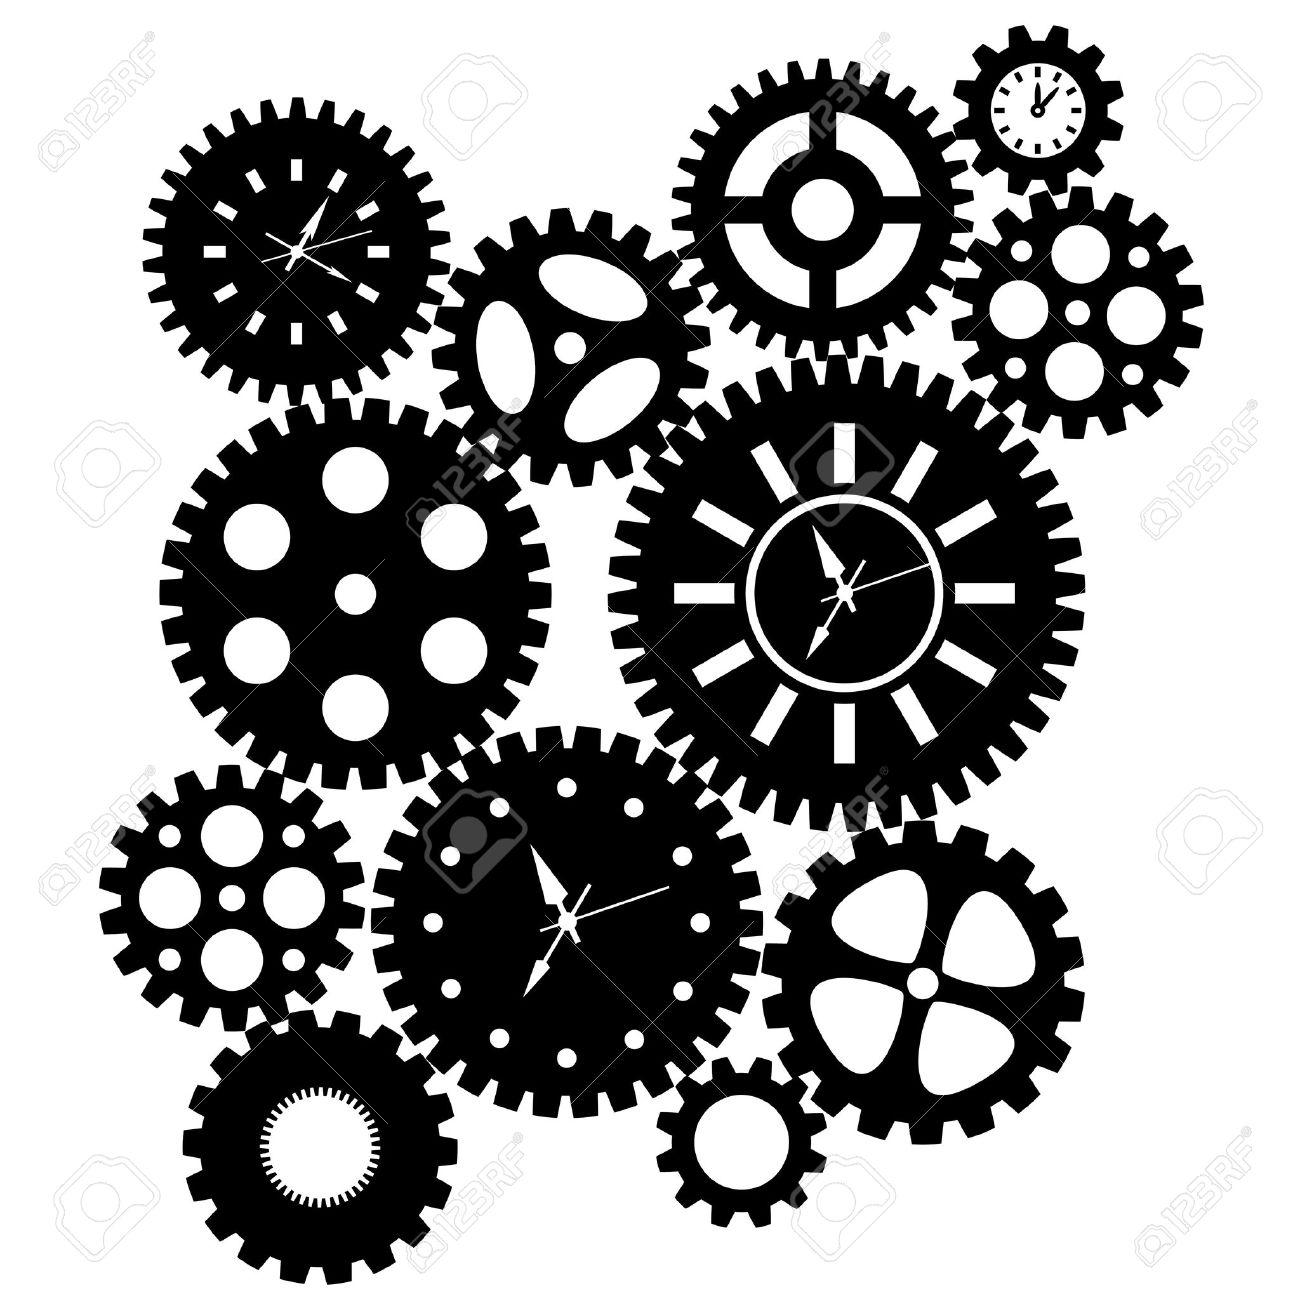 Illustration - Time Clock Gears Clipart Black SIlhouette Isolated on White  Background Illustration